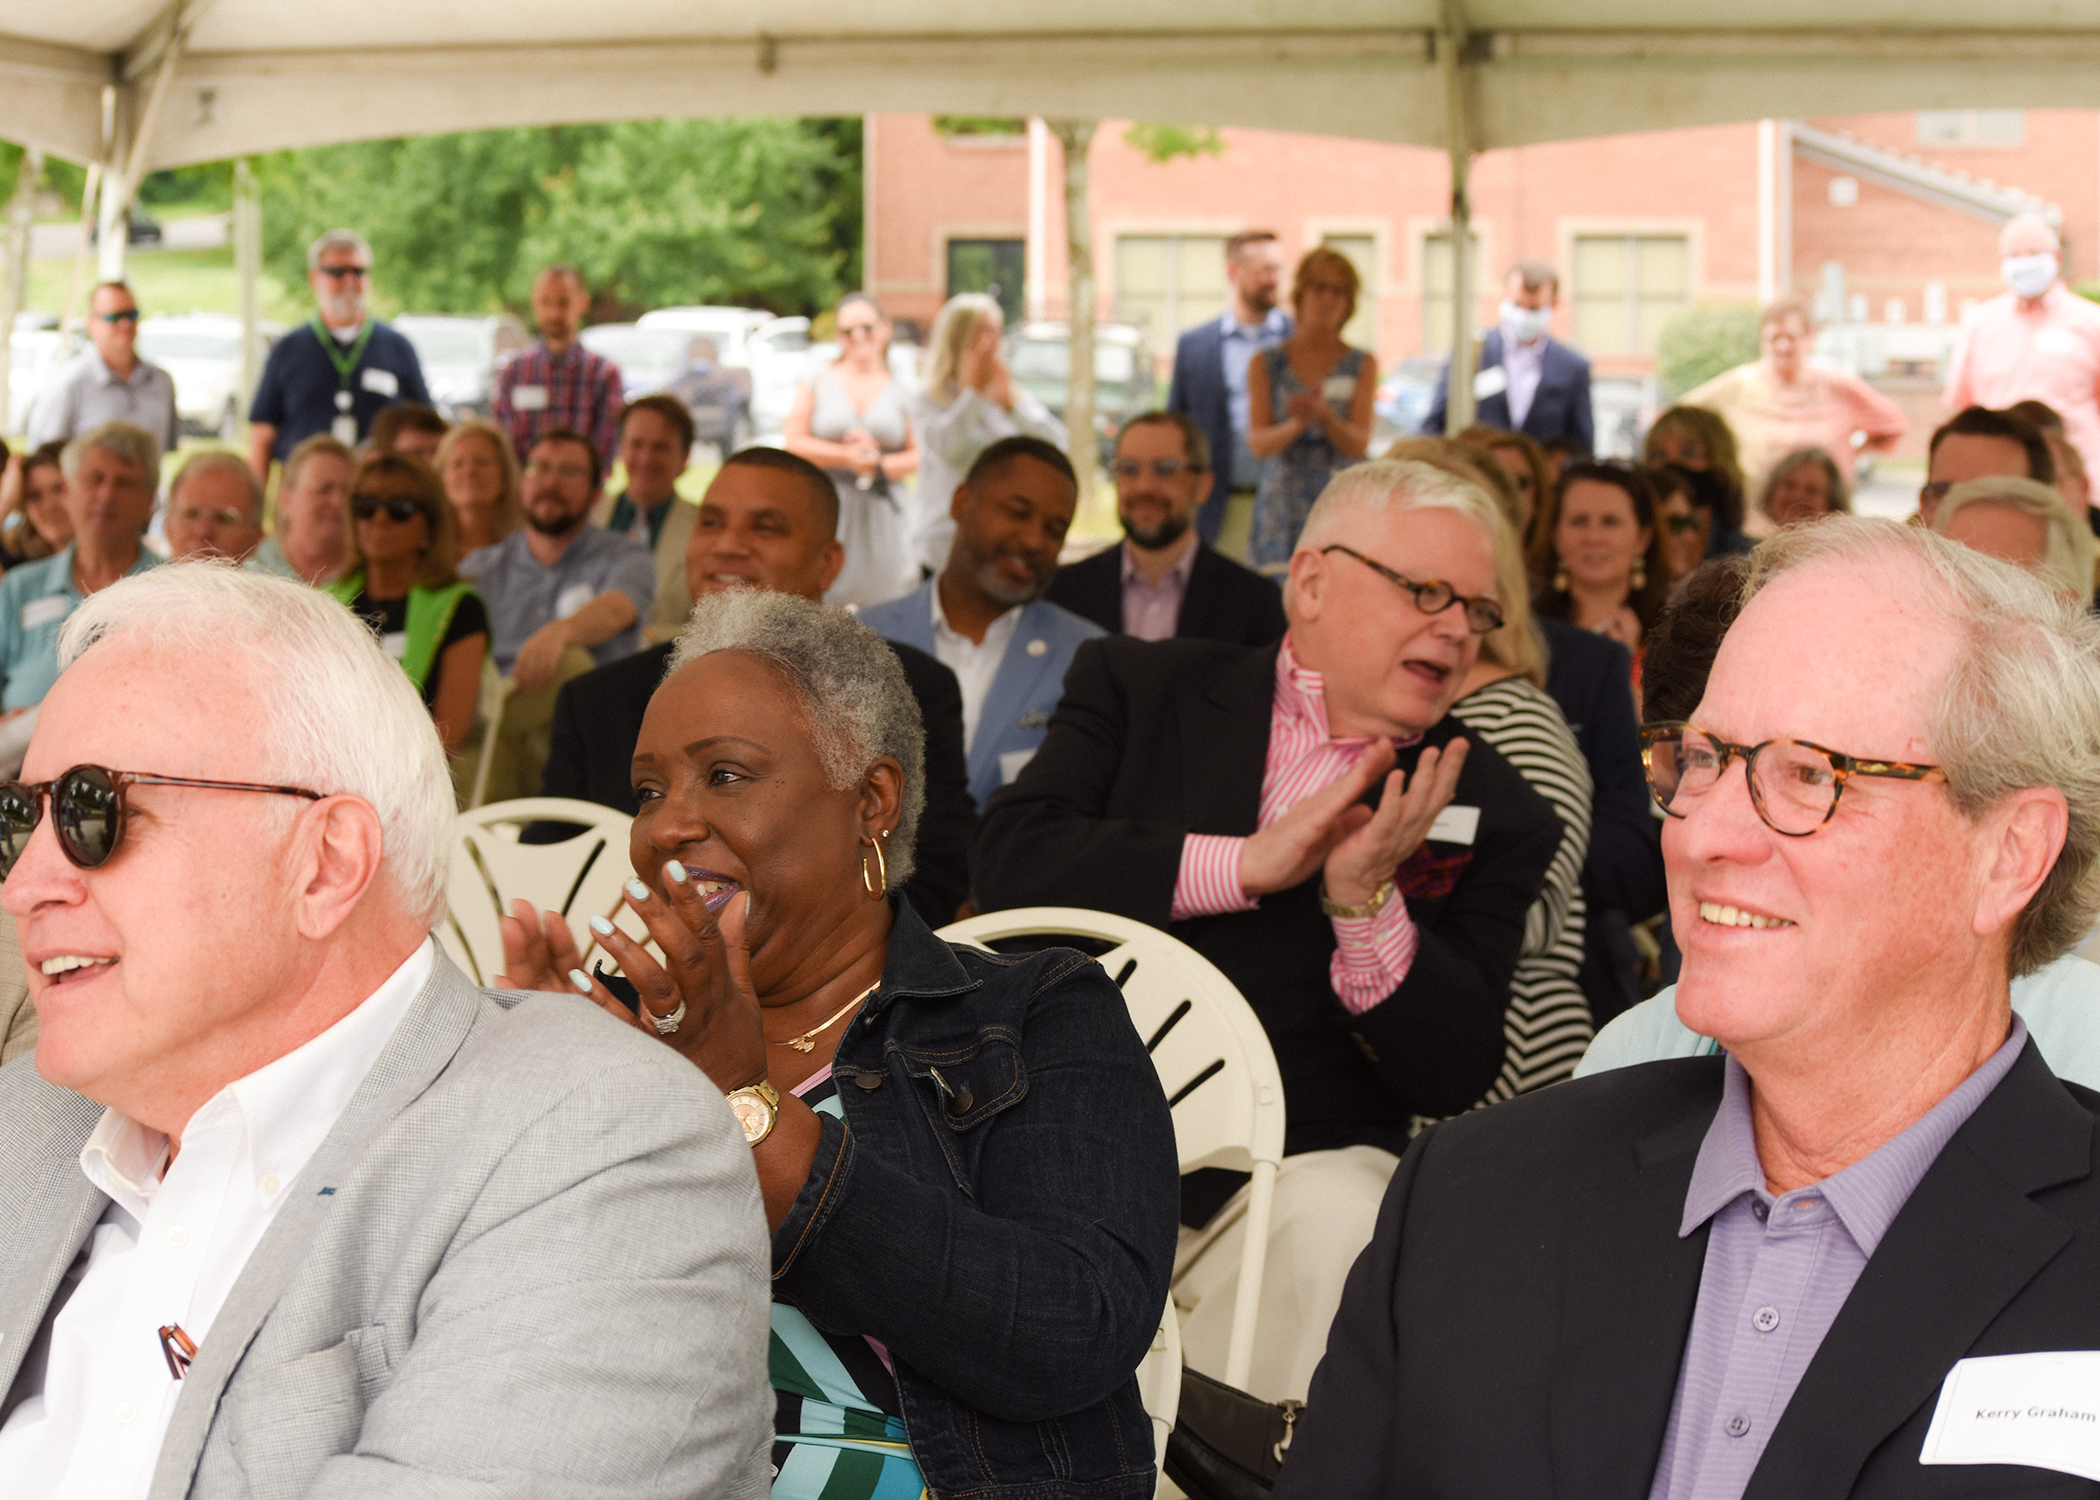 A warm celebration by CFMT board members and friends, city dignitaries, and future neighbors at the CFMT Groundbreaking